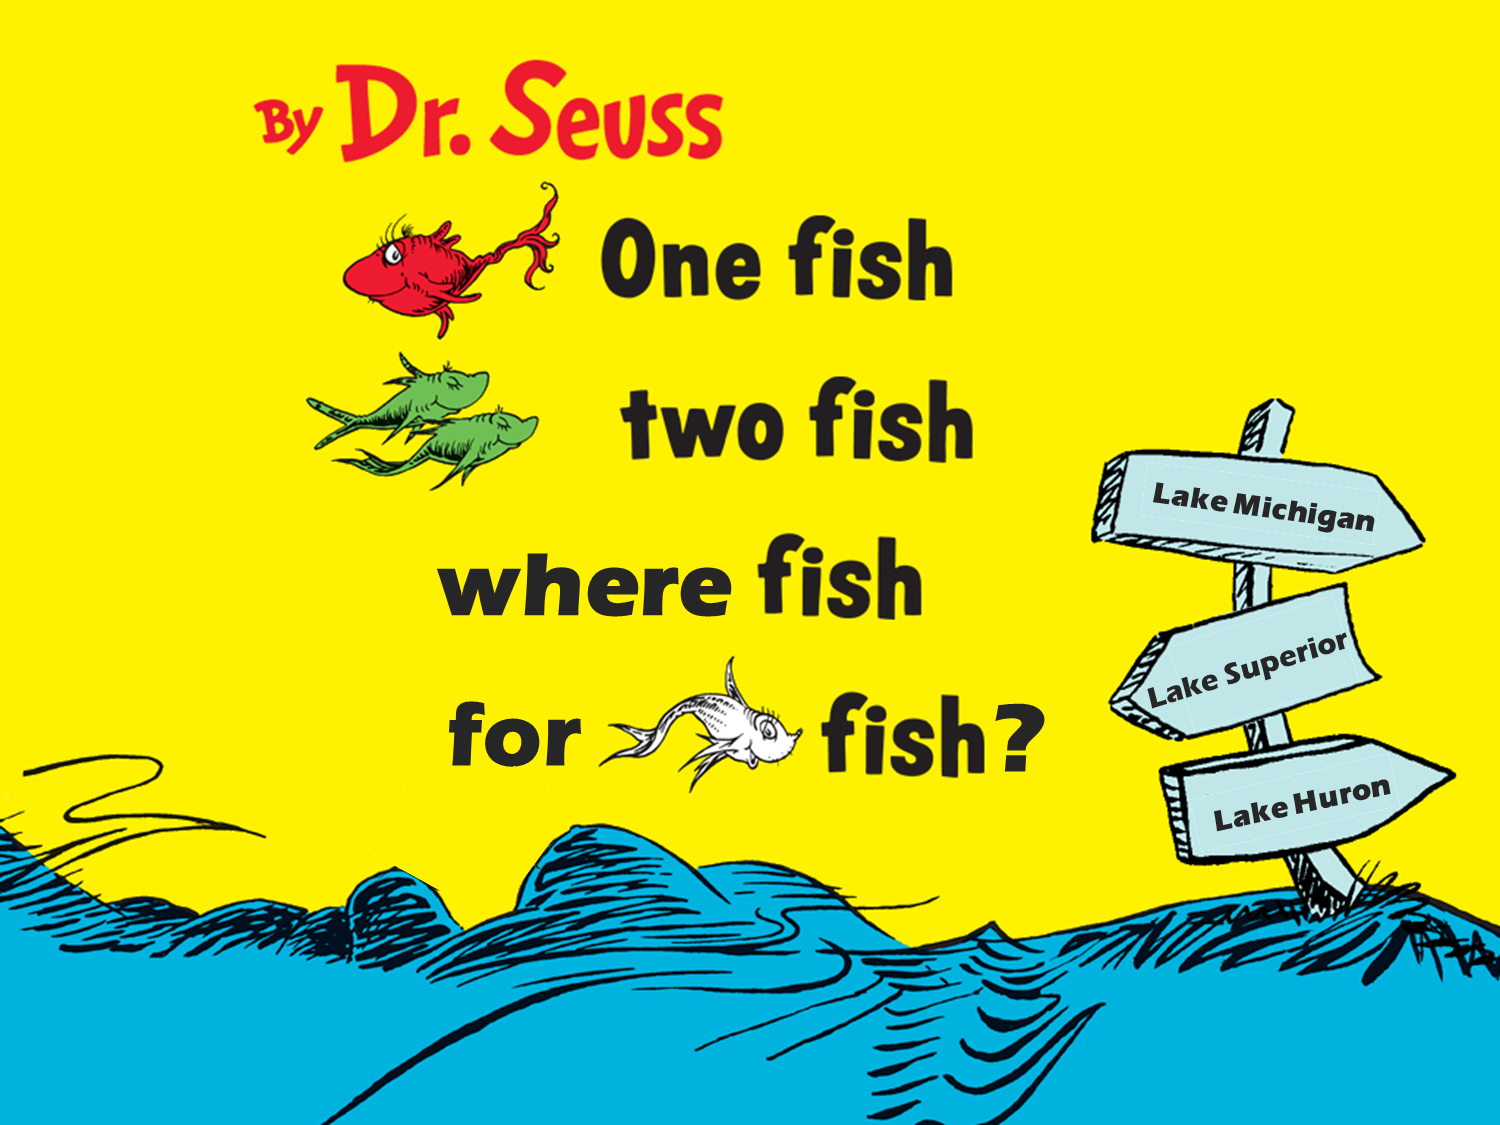 One fish two fish where fish for whitefish the for One fish two fish menu